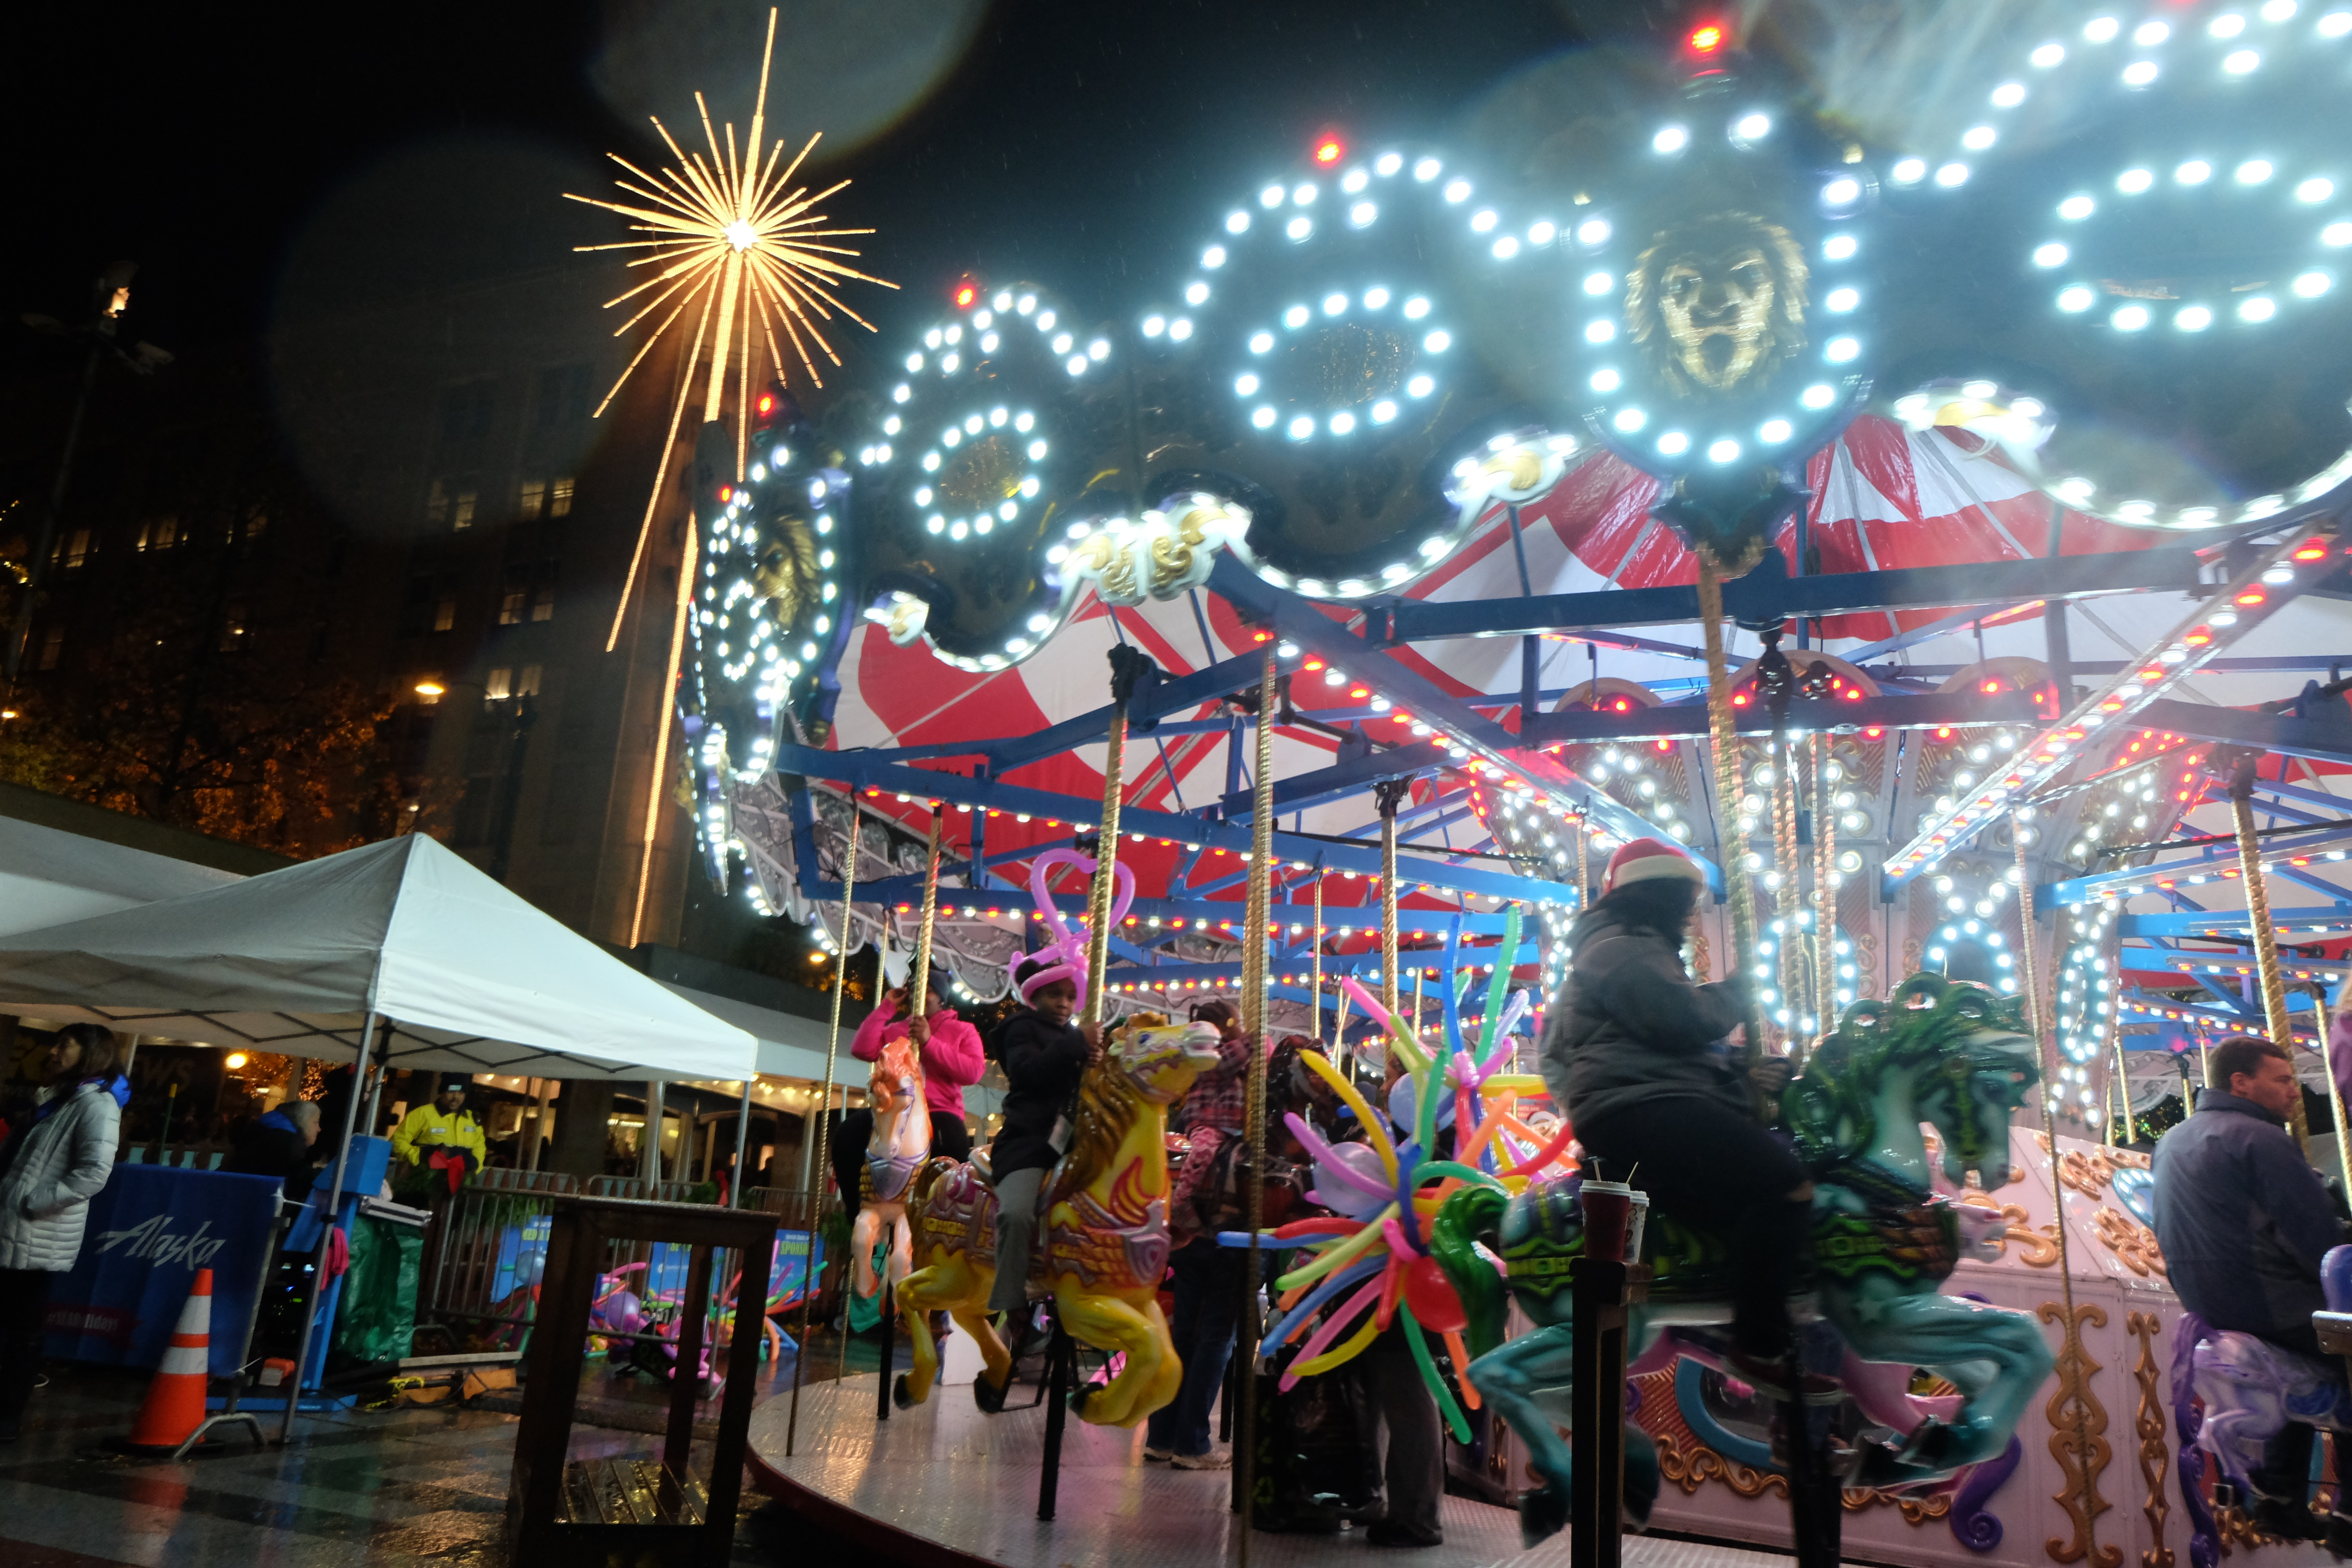 The whirling tradition of the Holiday Carousel returns on Friday, November 27 at Westlake Park. Kids of all ages are welcome to take a spin, with a suggested donation of three dollars. Proceeds benefit the work of Treehouse, providing foster kids a childhood and a future. Hours of operation: Monday-Thursday: 11 a.m. - 9 p.m. Friday: 11 a.m. - 10 p.m. Saturday: 10 a.m. - 10 p.m. Sunday: 10 a.m. - 9 p.m. Special Hours: Nov. 27: 10 a.m. - 10 p.m. Dec. 13: 8 a.m. - 9 p.m. Dec. 24: 10 a.m. - 5 p.m. Dec. 25: CLOSED Dec. 31: 10 a.m. - 5 p.m. Jan. 1: 10 a.m. - 2 p.m.